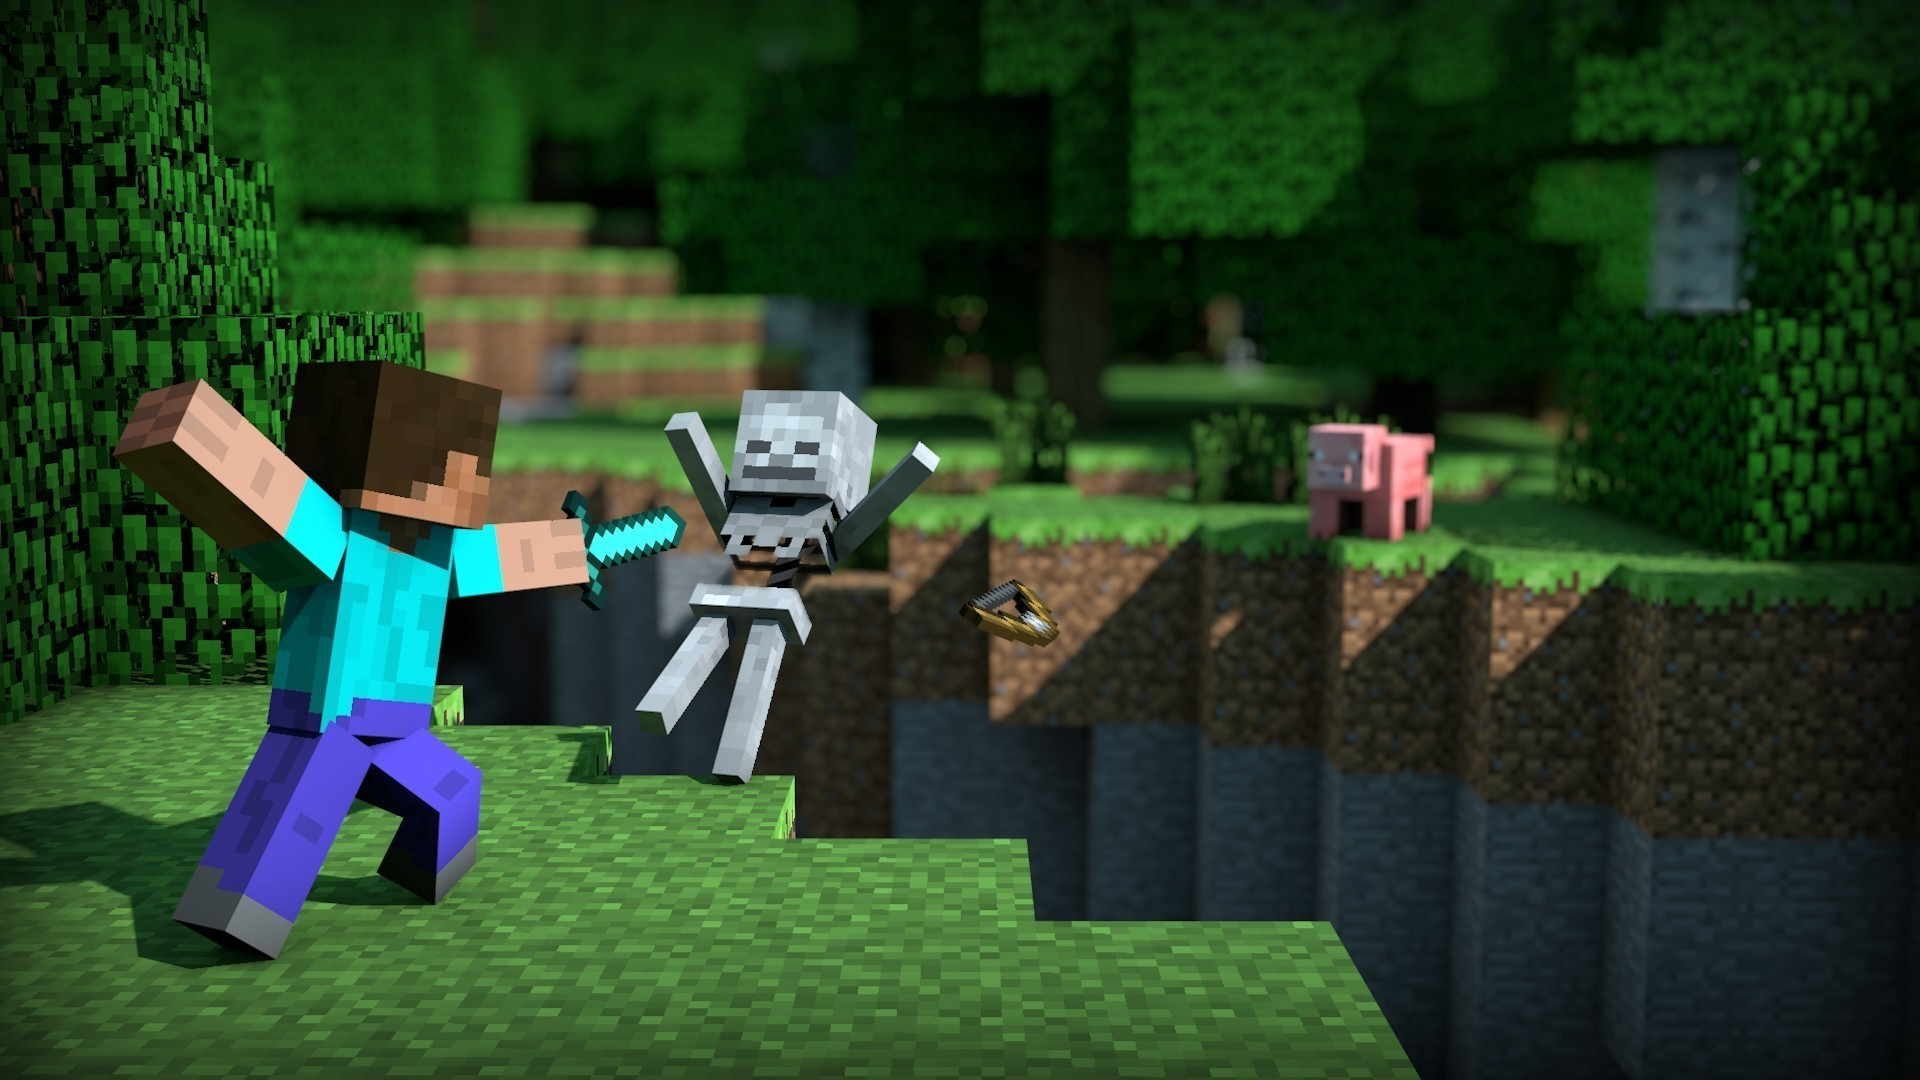 Res: 1920x1080, 1000+ ideas about Minecraft Wallpaper on Pinterest Minecraft ... - HD  Wallpapers